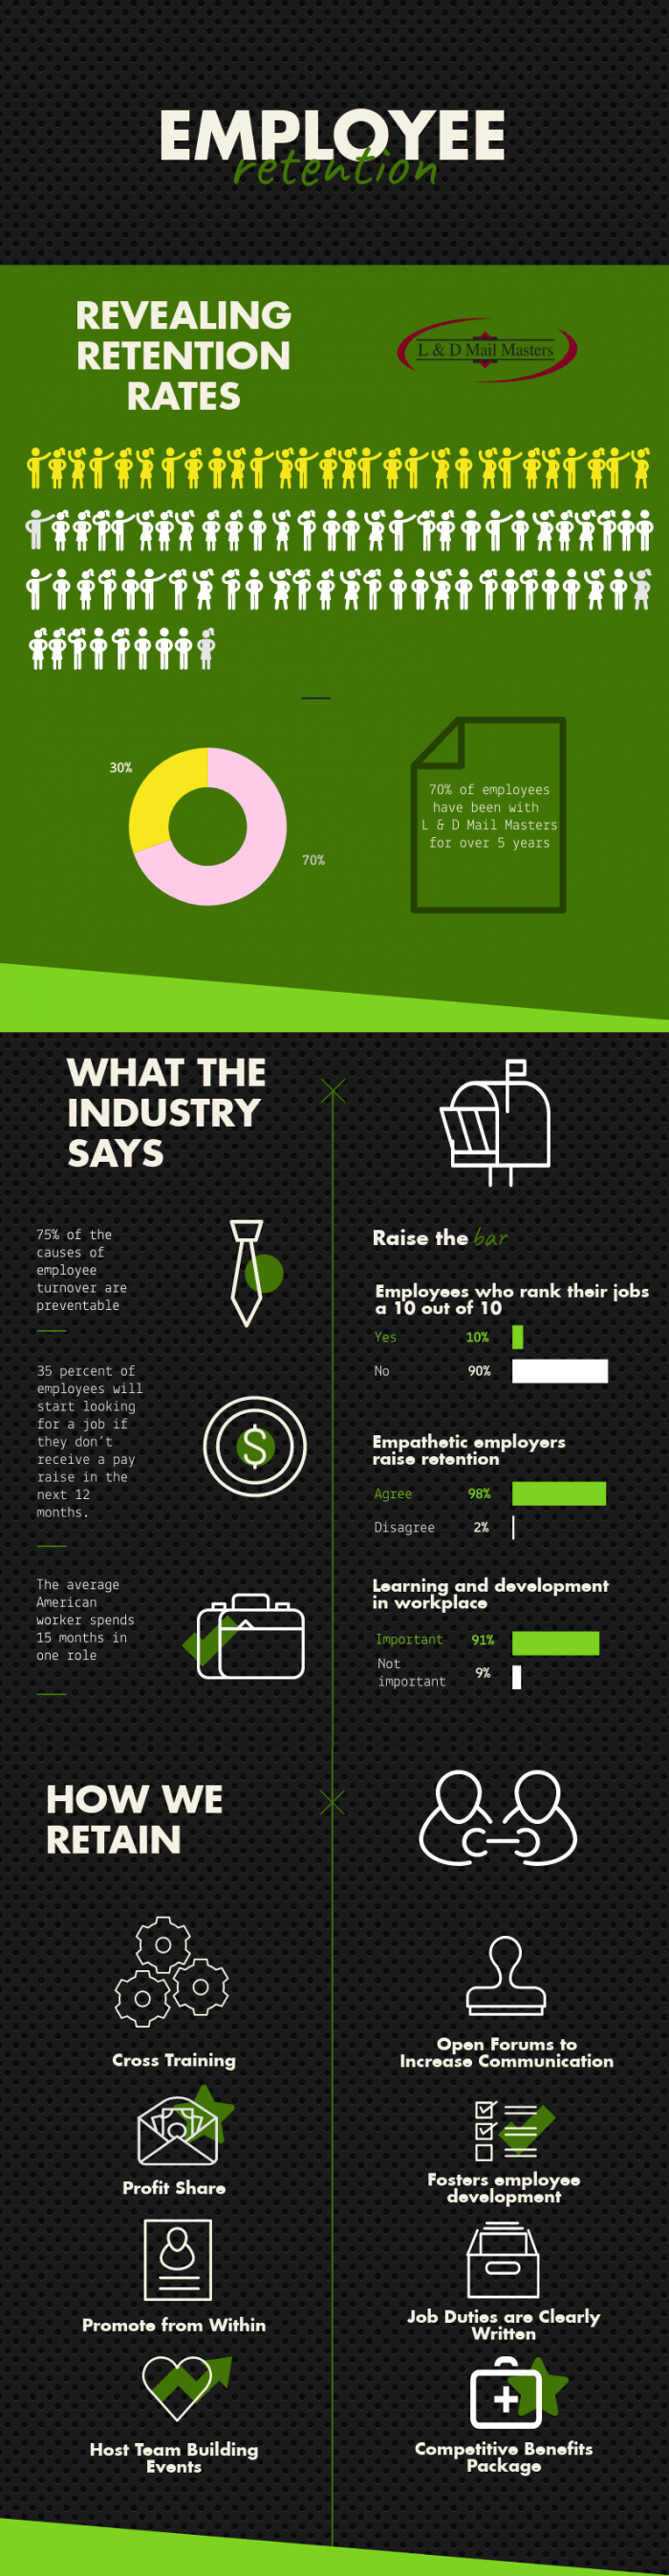 Employee Retention Infographic